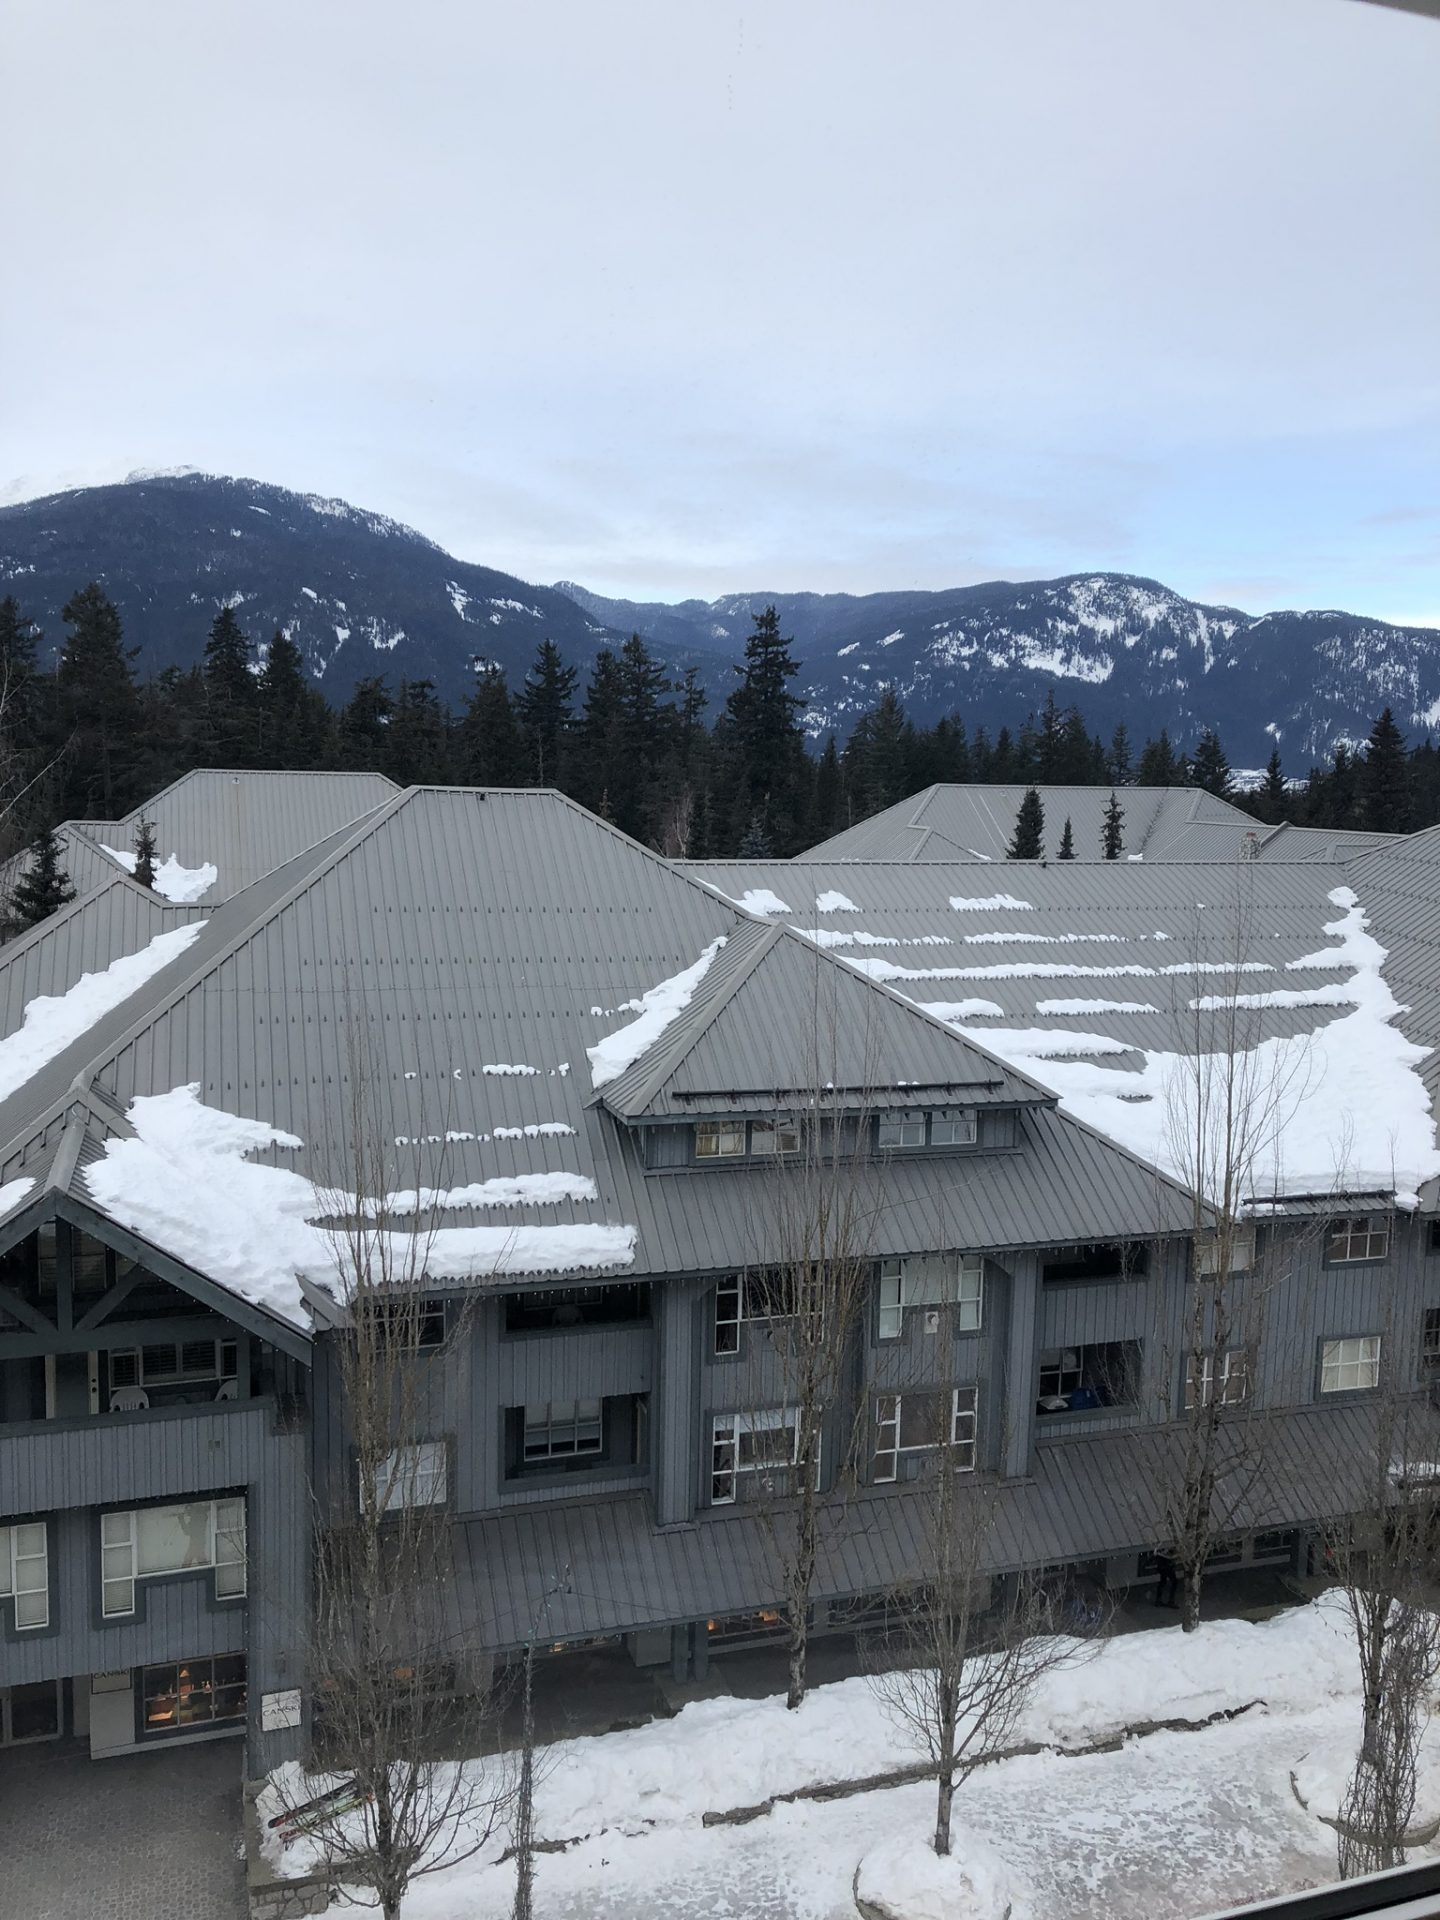 Snowy views from Fairmont Chateau Whistler